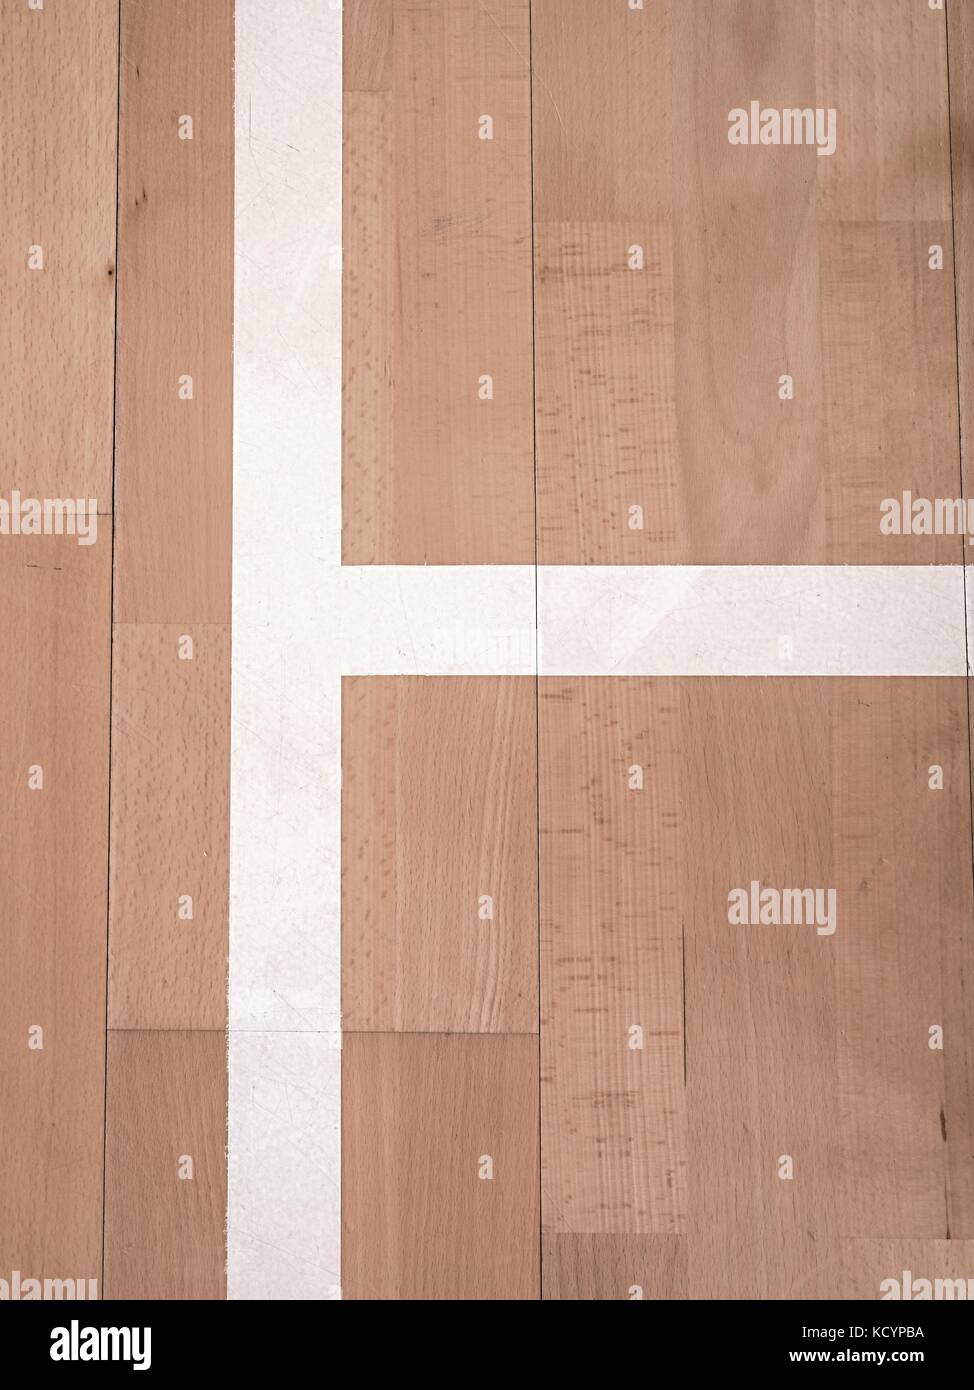 White line in sports hall playground. Renewal  wooden floor of sports hall with colorful marking lines and new lacquered - Stock Image